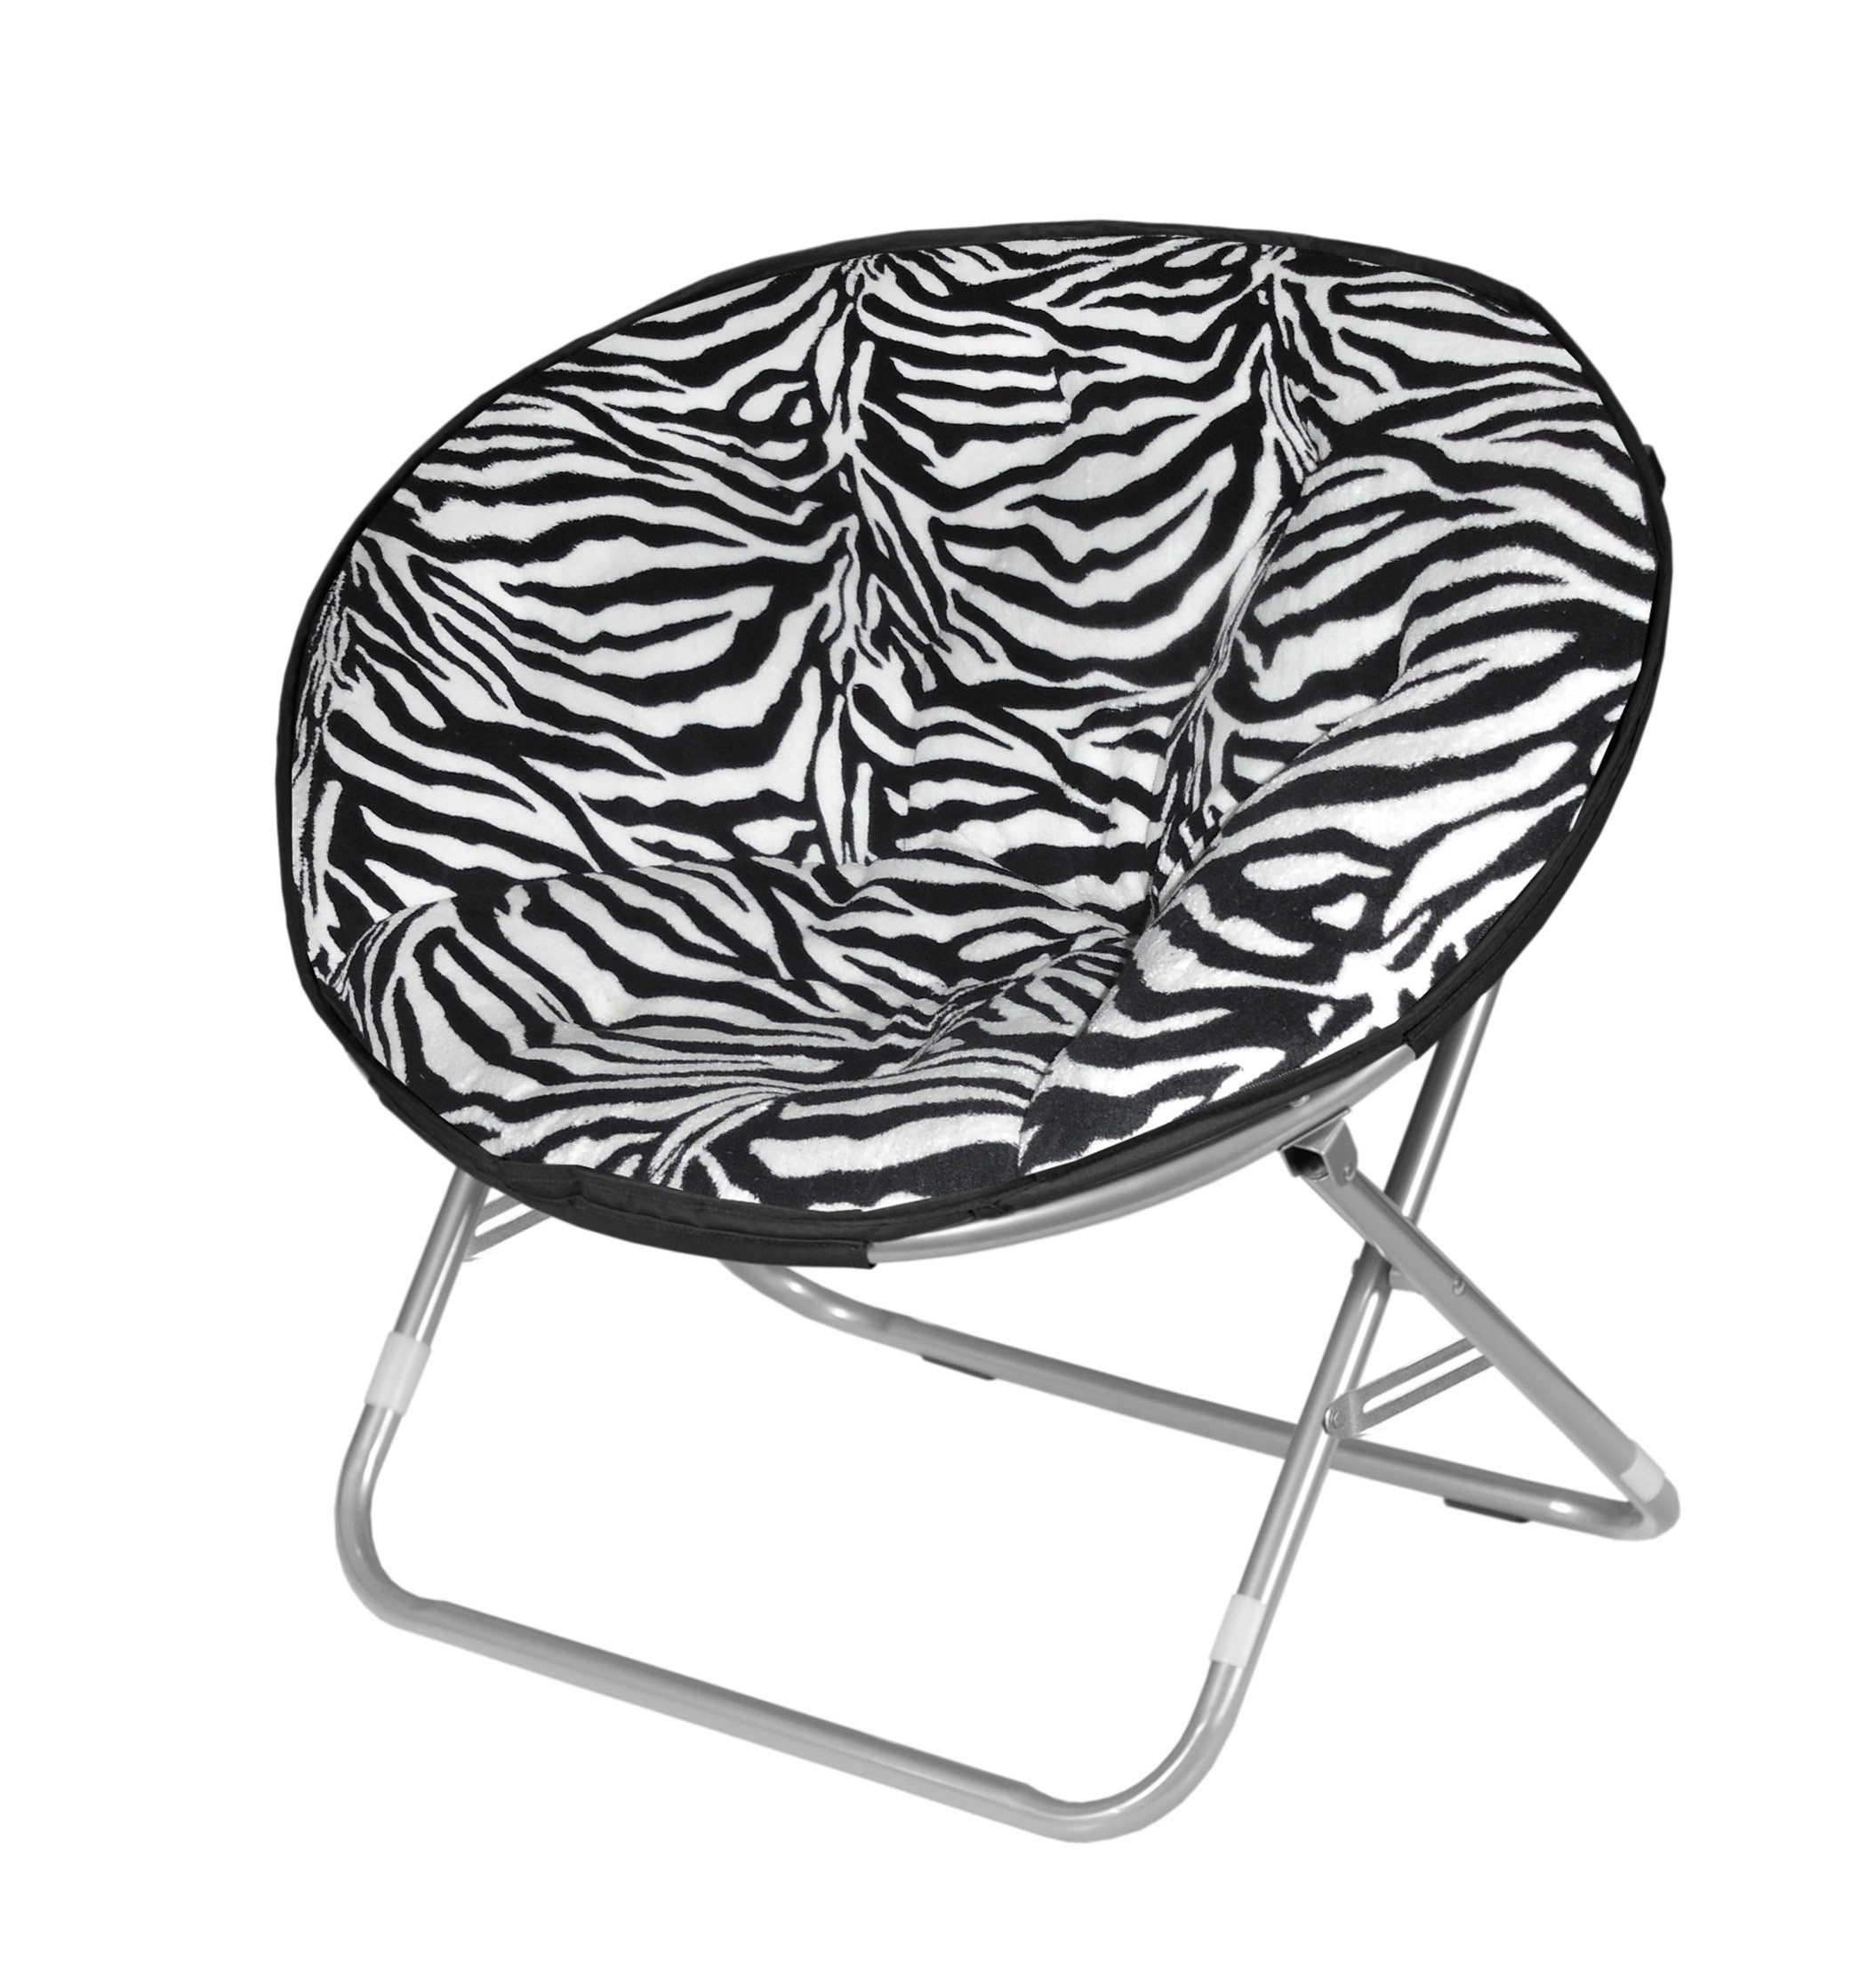 saucer chair for kids pierre paulin microplush folding zebra print